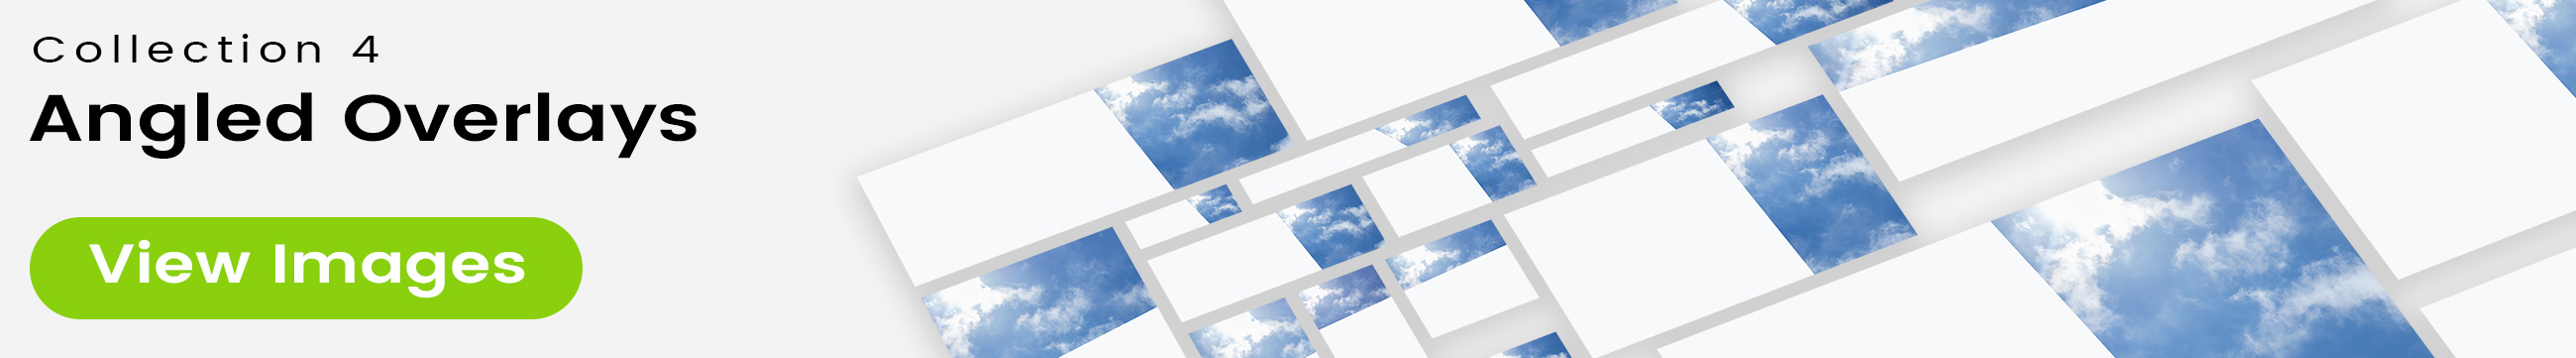 See 25 bonus images included with clouds stock image 9484. Collection 4 of 4 features an angled overlay design customized with a color that complements each photo.